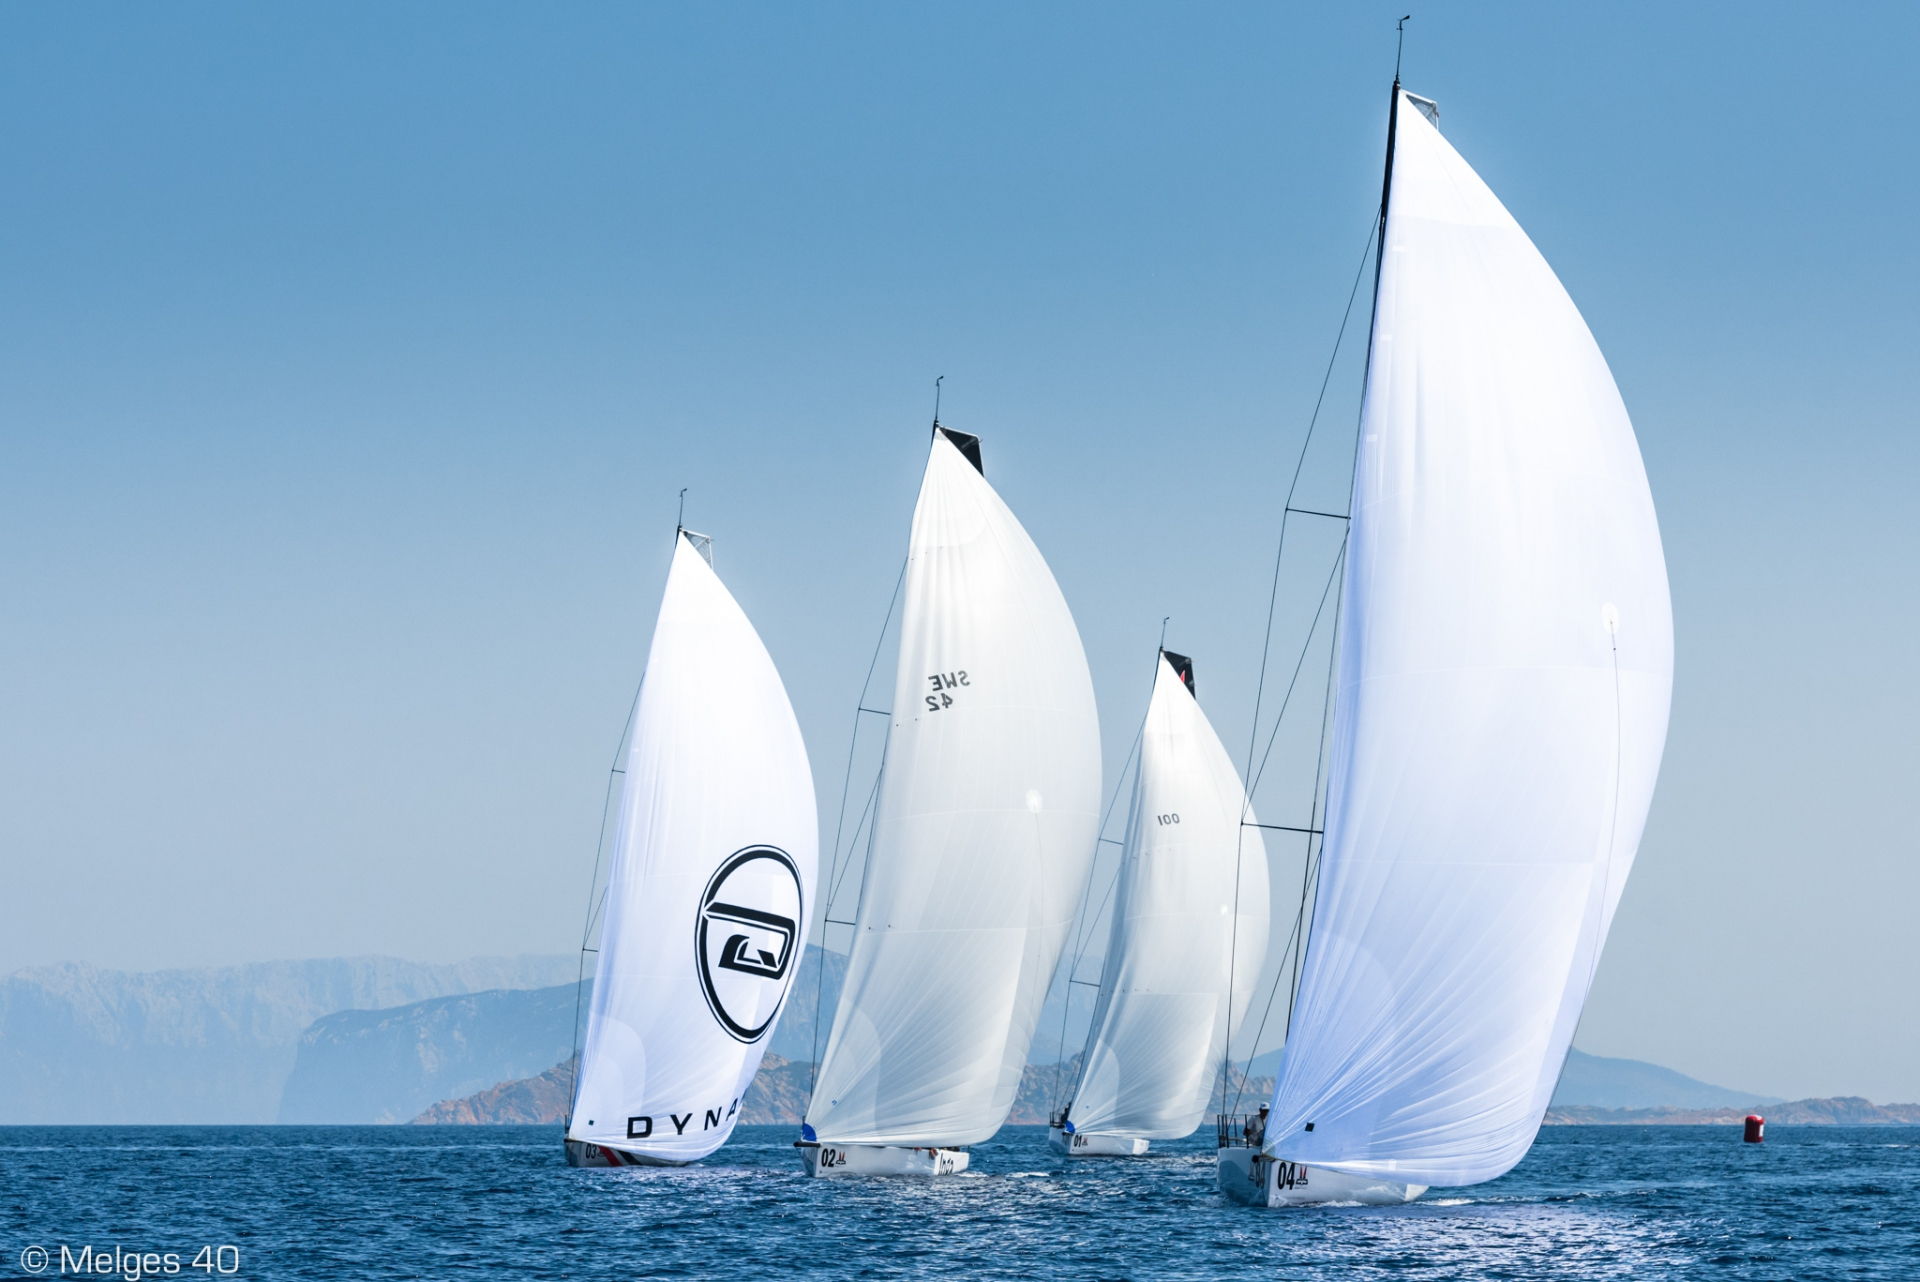 Melges 40 Grand Prix - Video Final Day Online - NEWS - Yacht Club Costa Smeralda